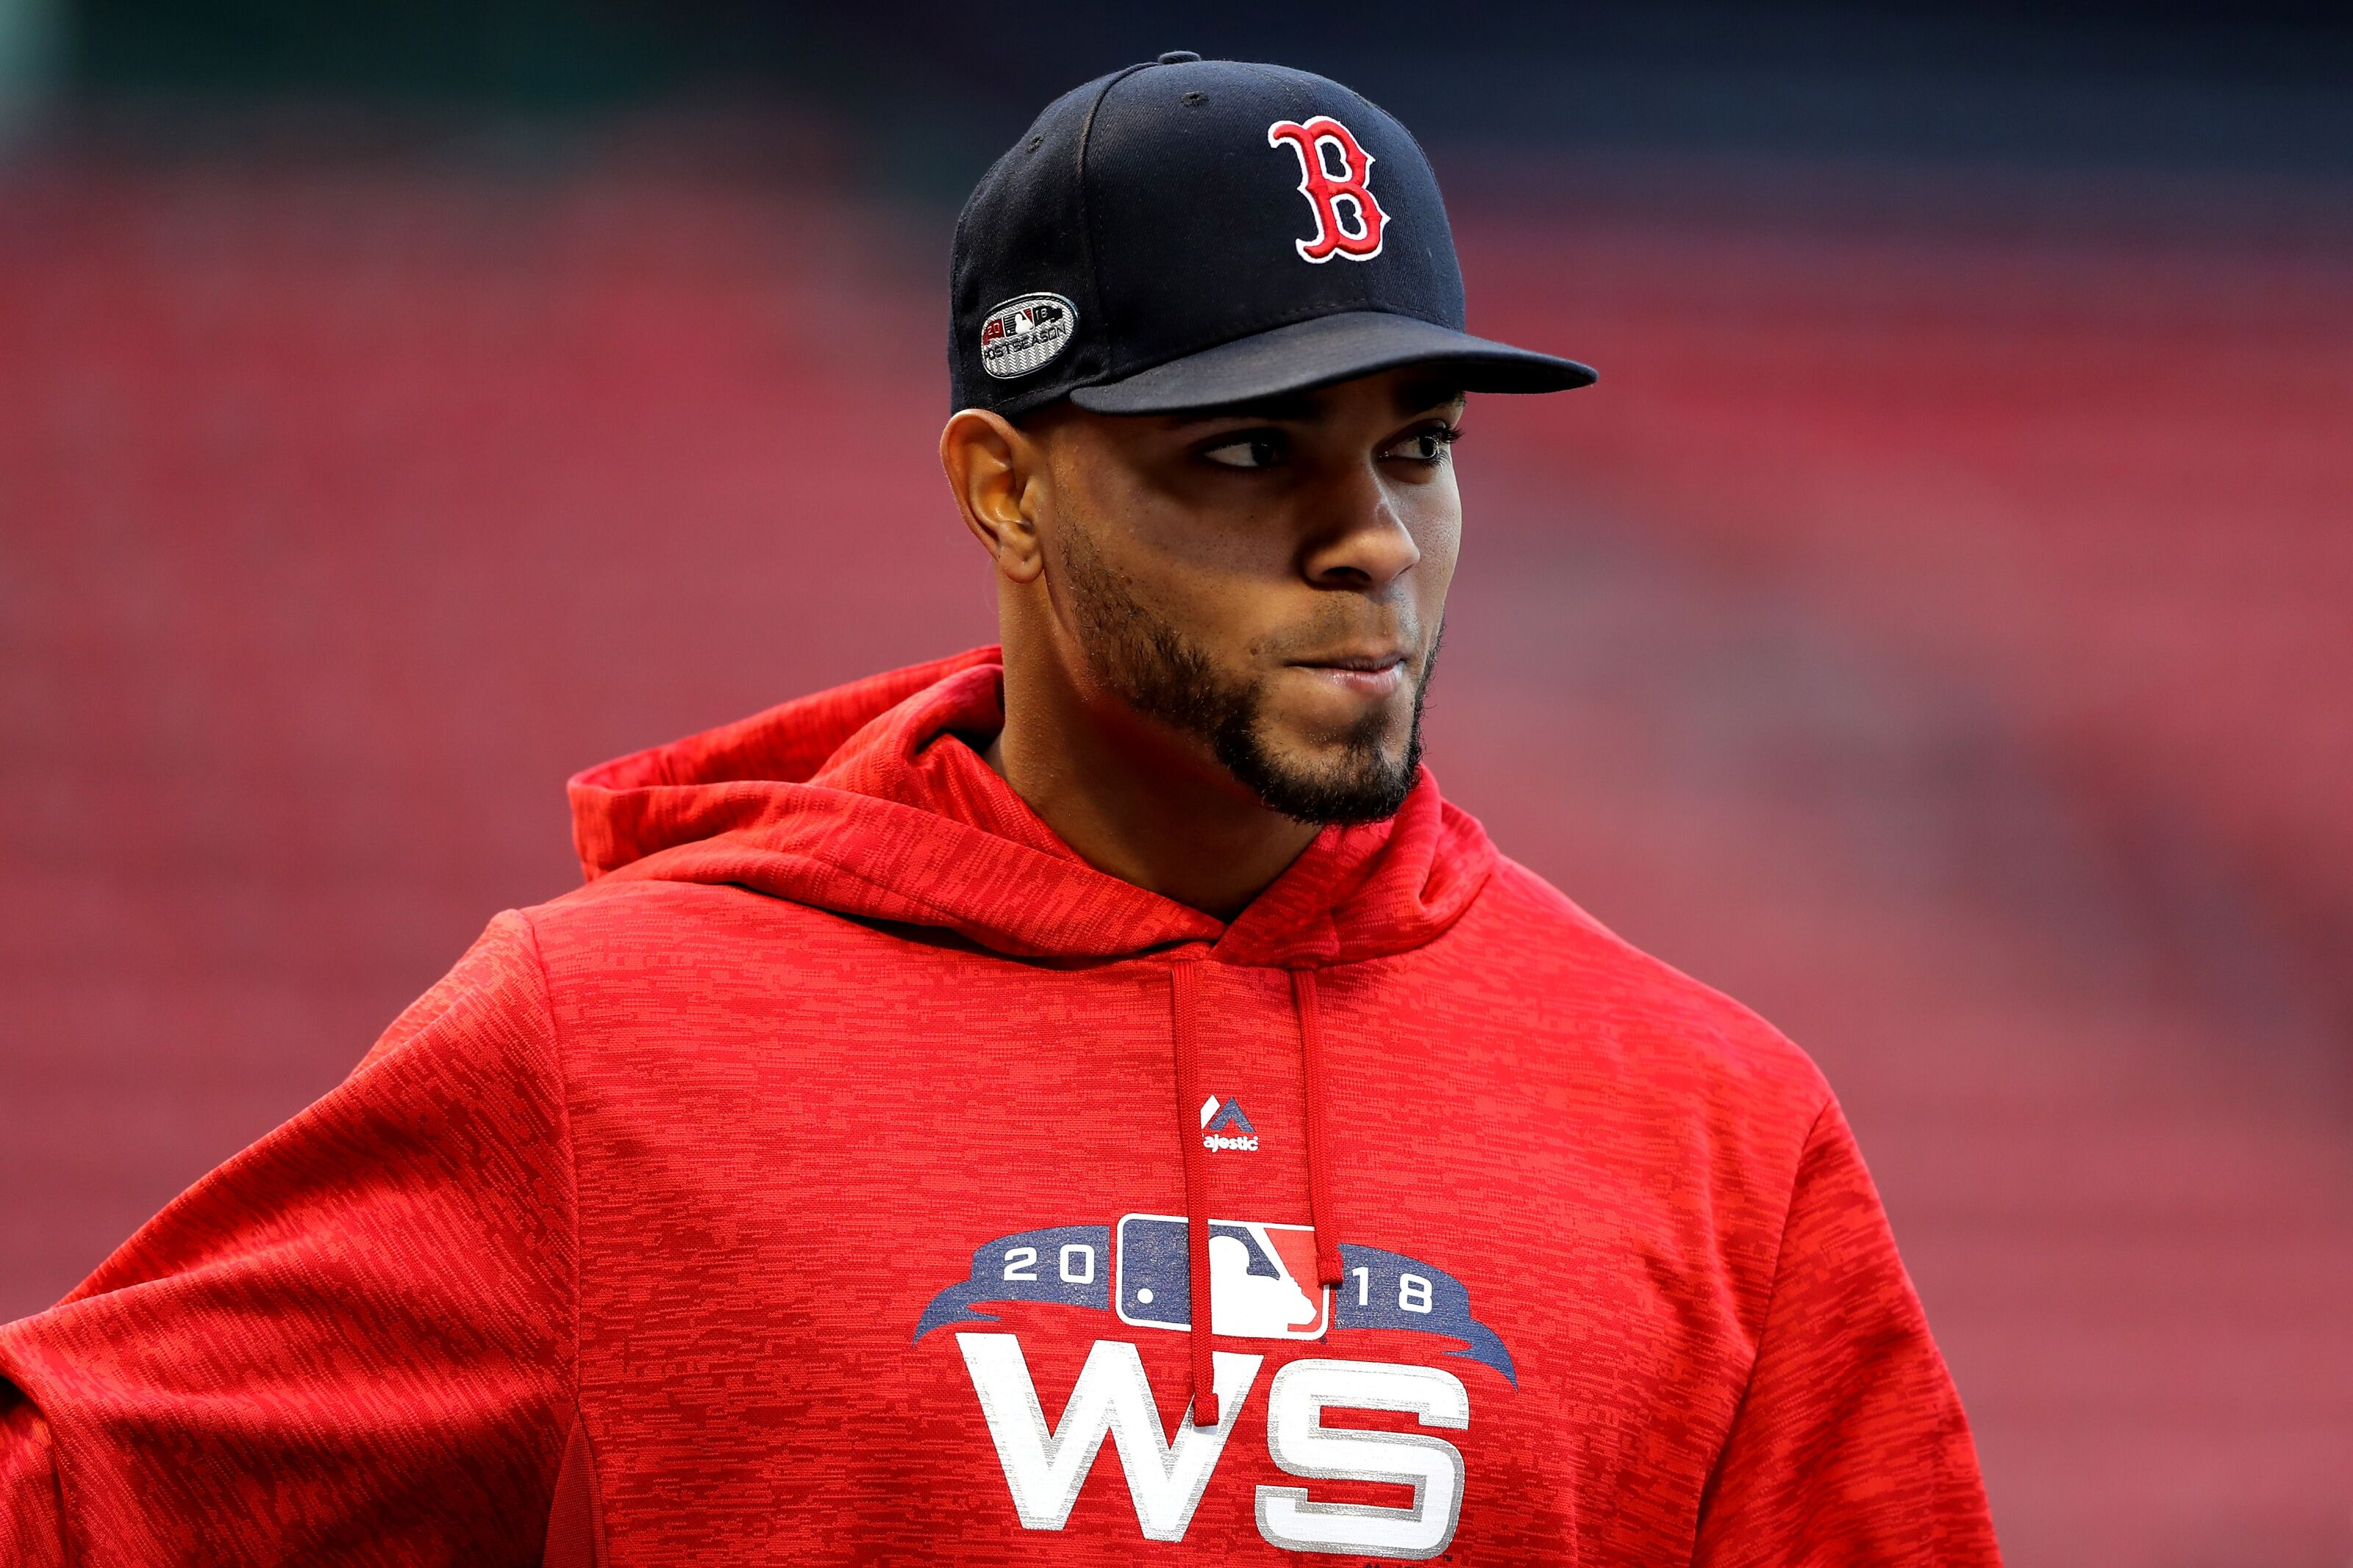 11a2f9c8b Power ranking the Red Sox projected free agent class for 2019-20